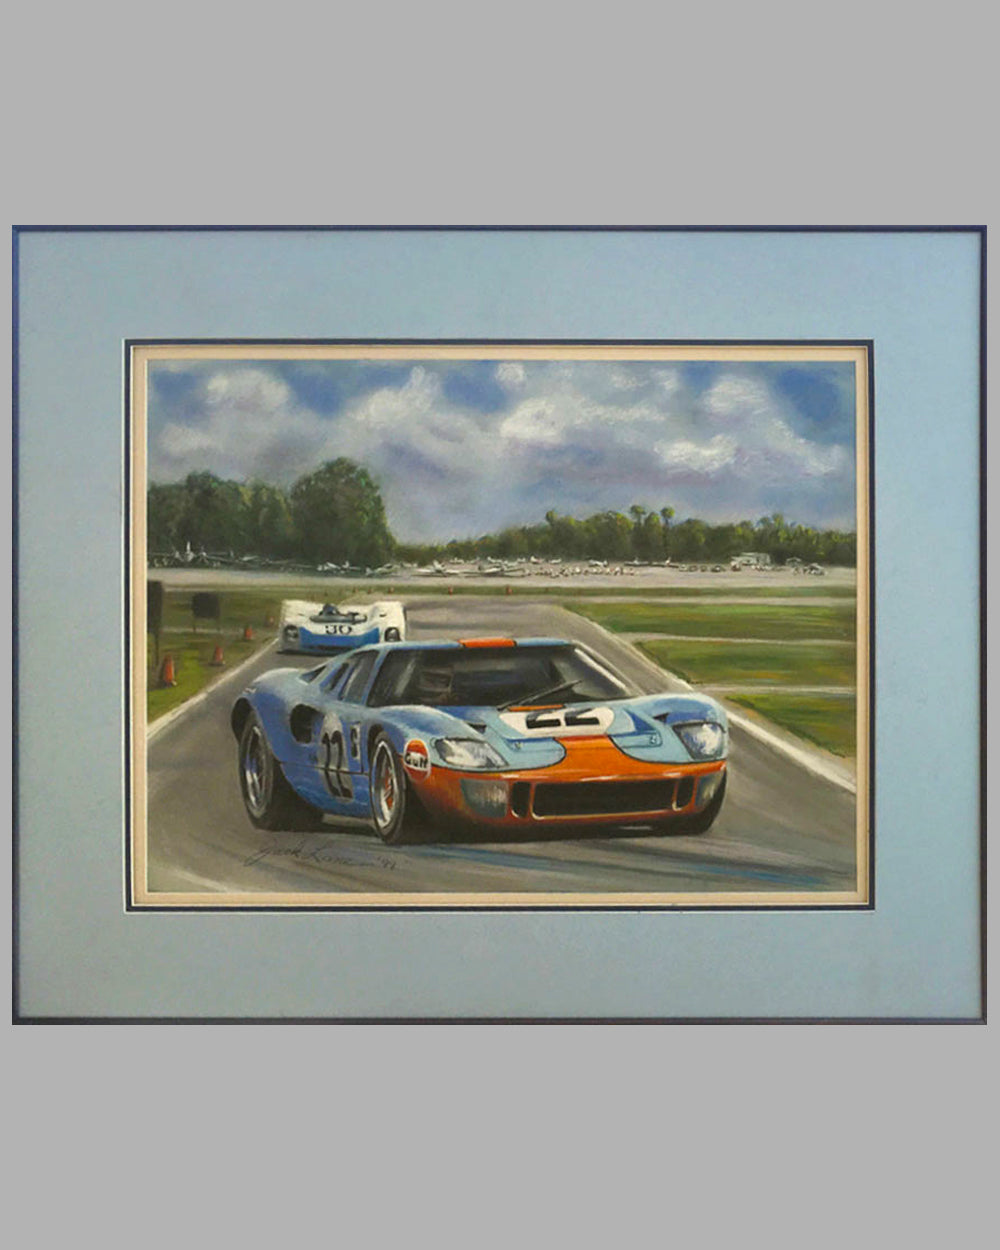 1969 - 12 Hours of Sebring painting by Jack Lane